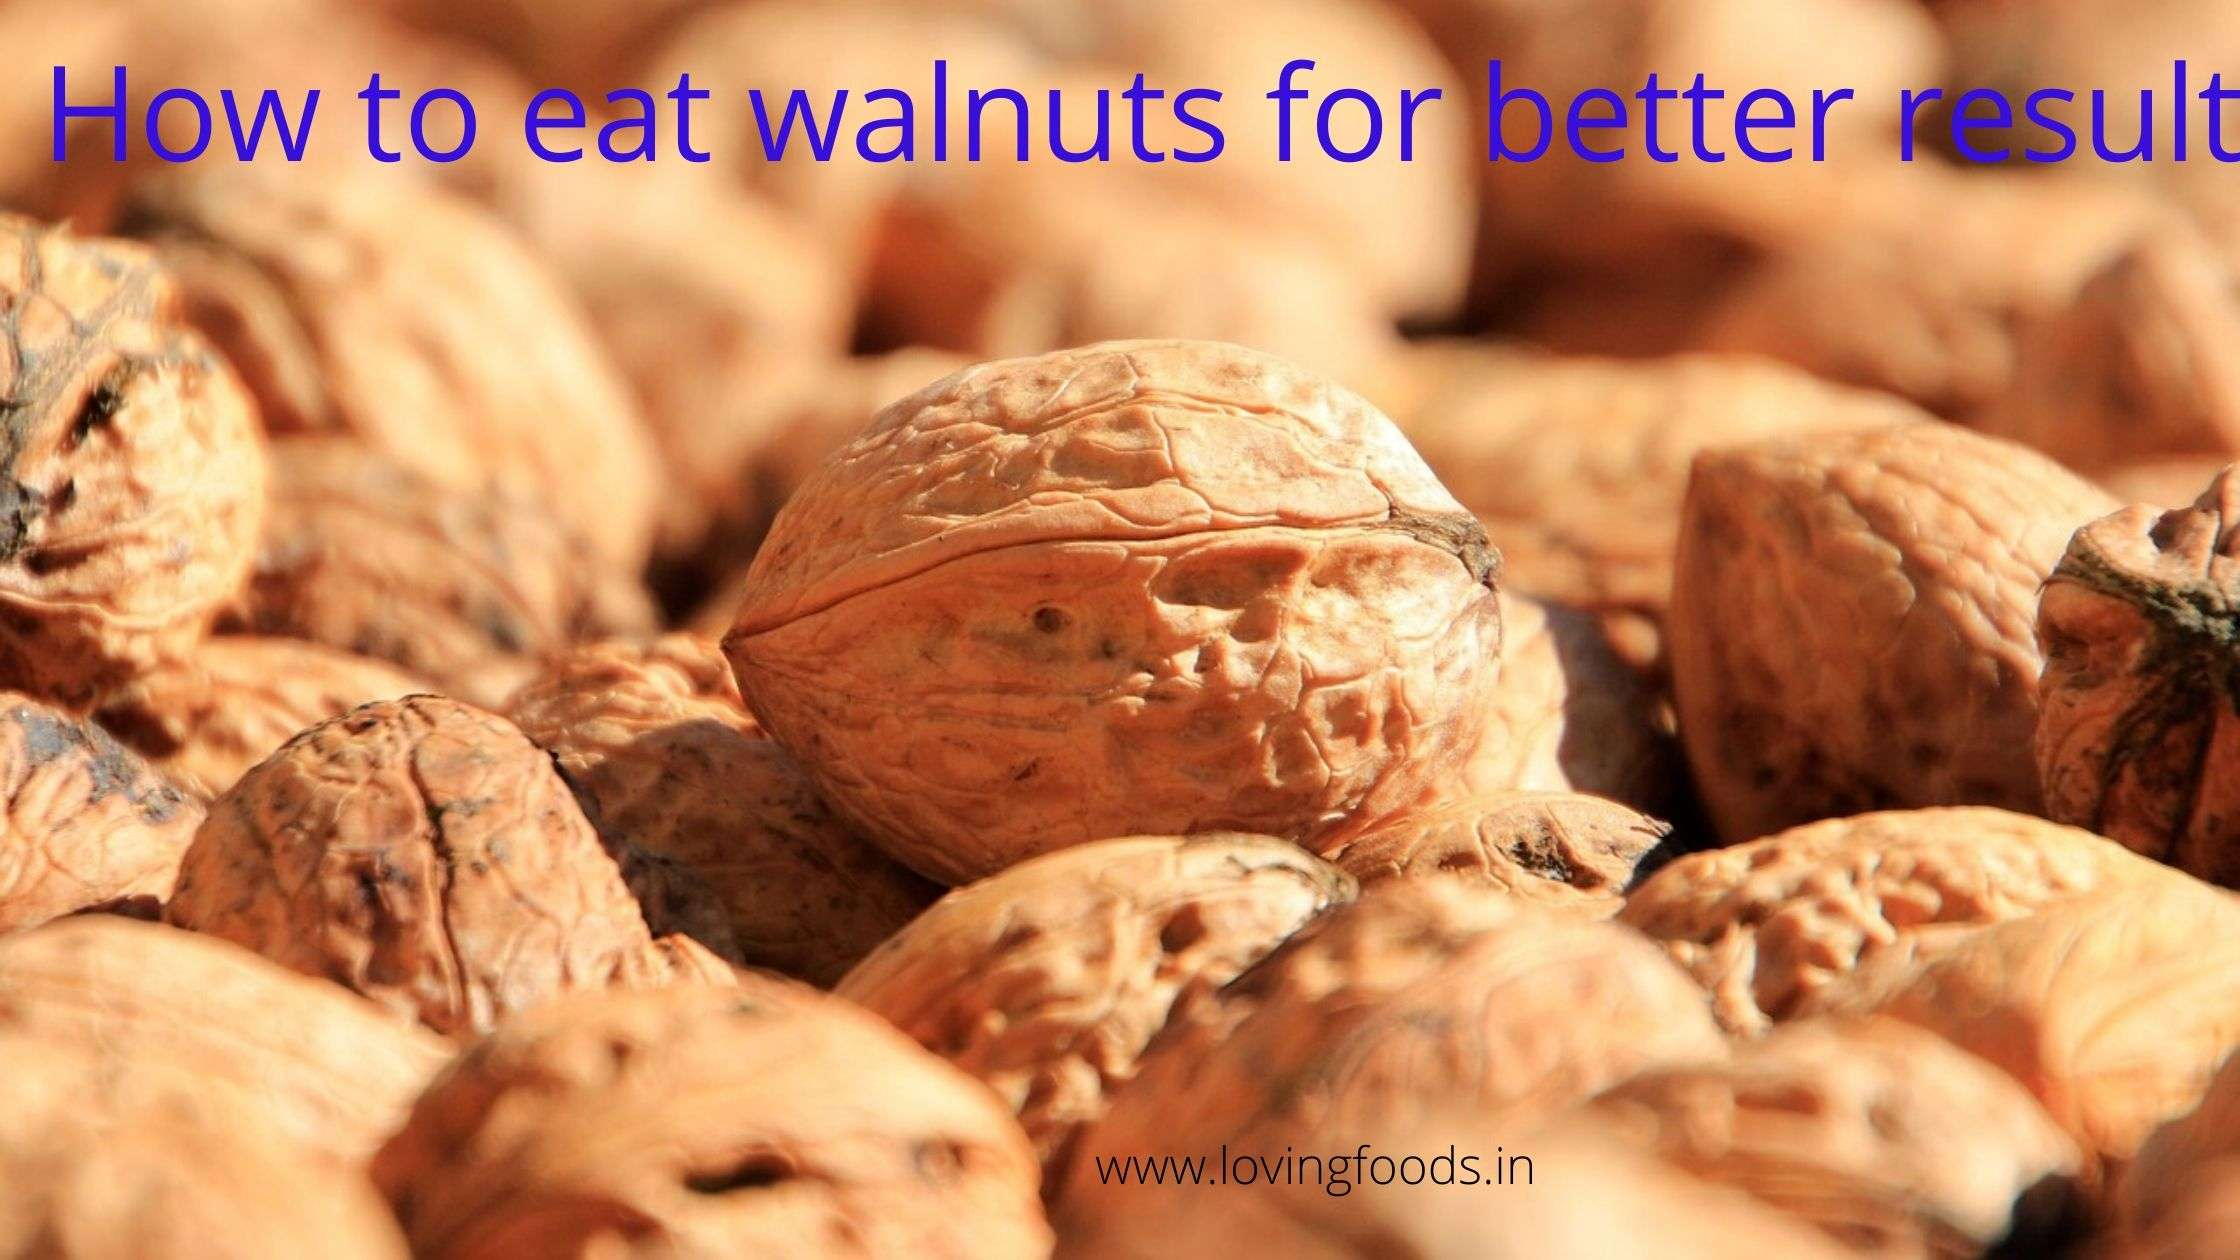 How to eat walnuts